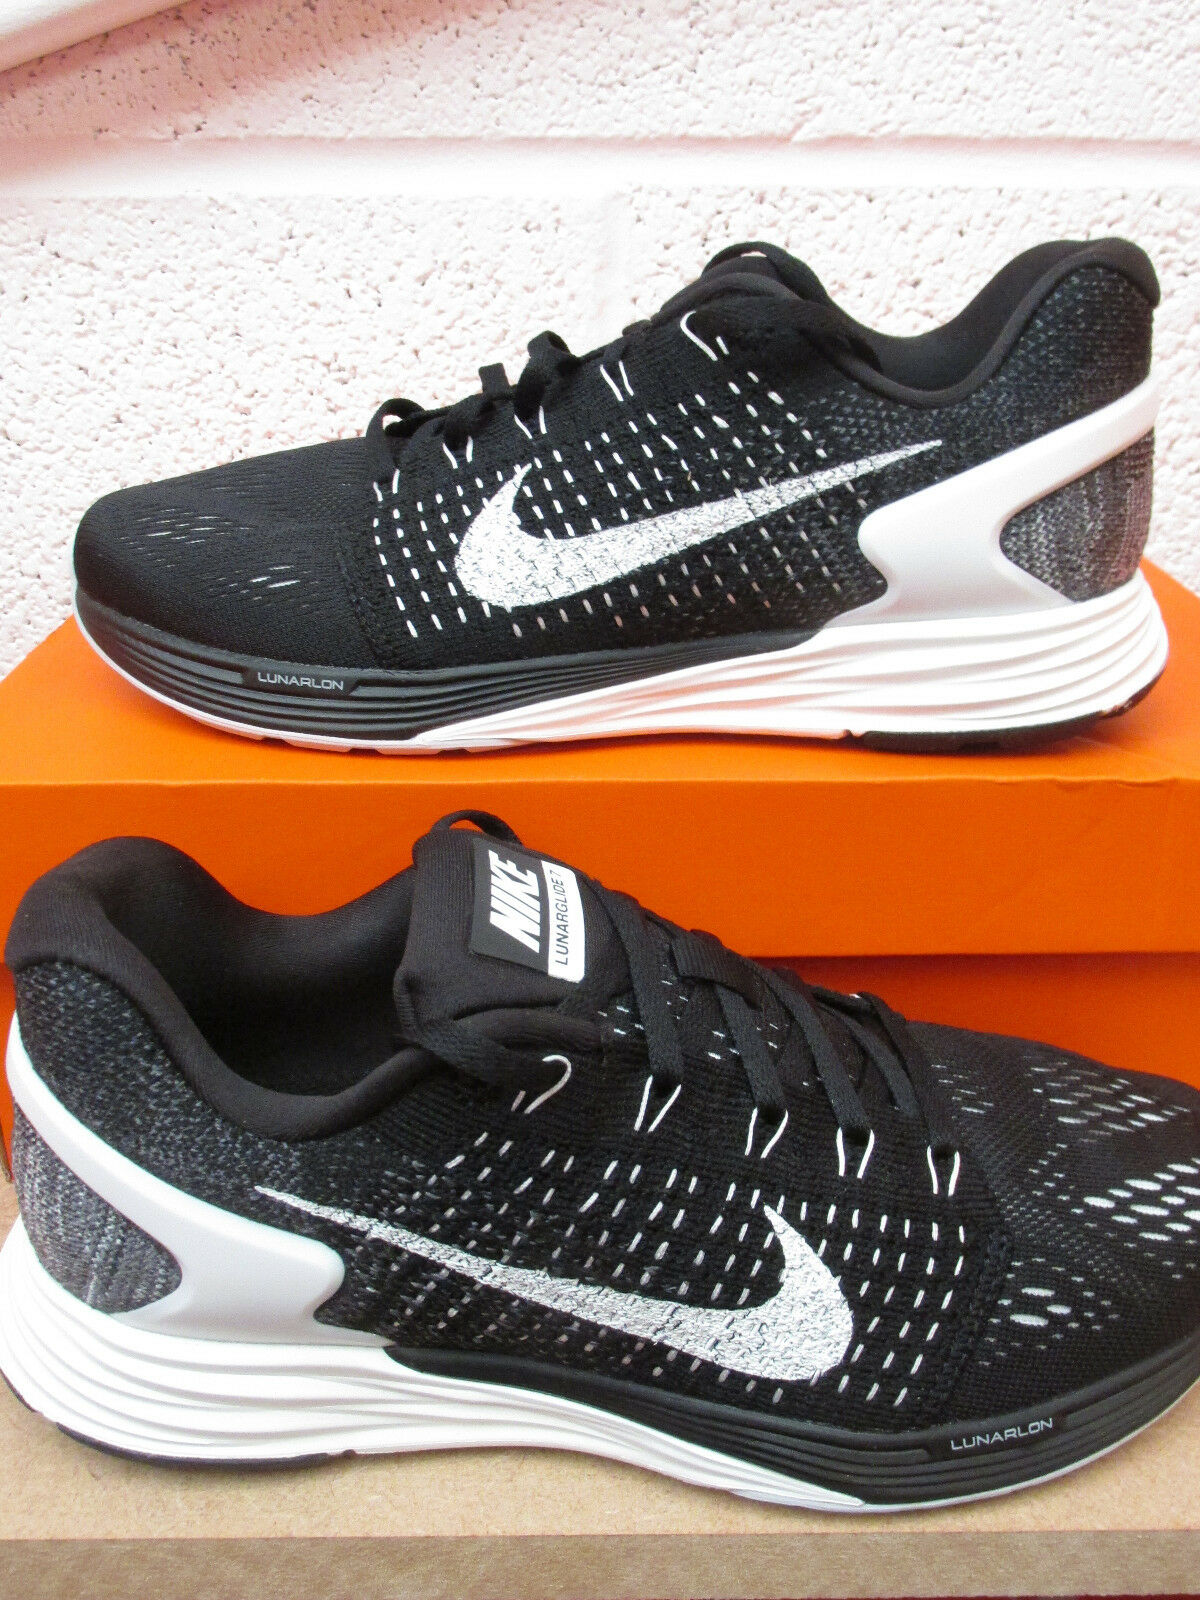 nike lunarglide 7  Femme  running trainers 747356 001 sneakers  chaussures